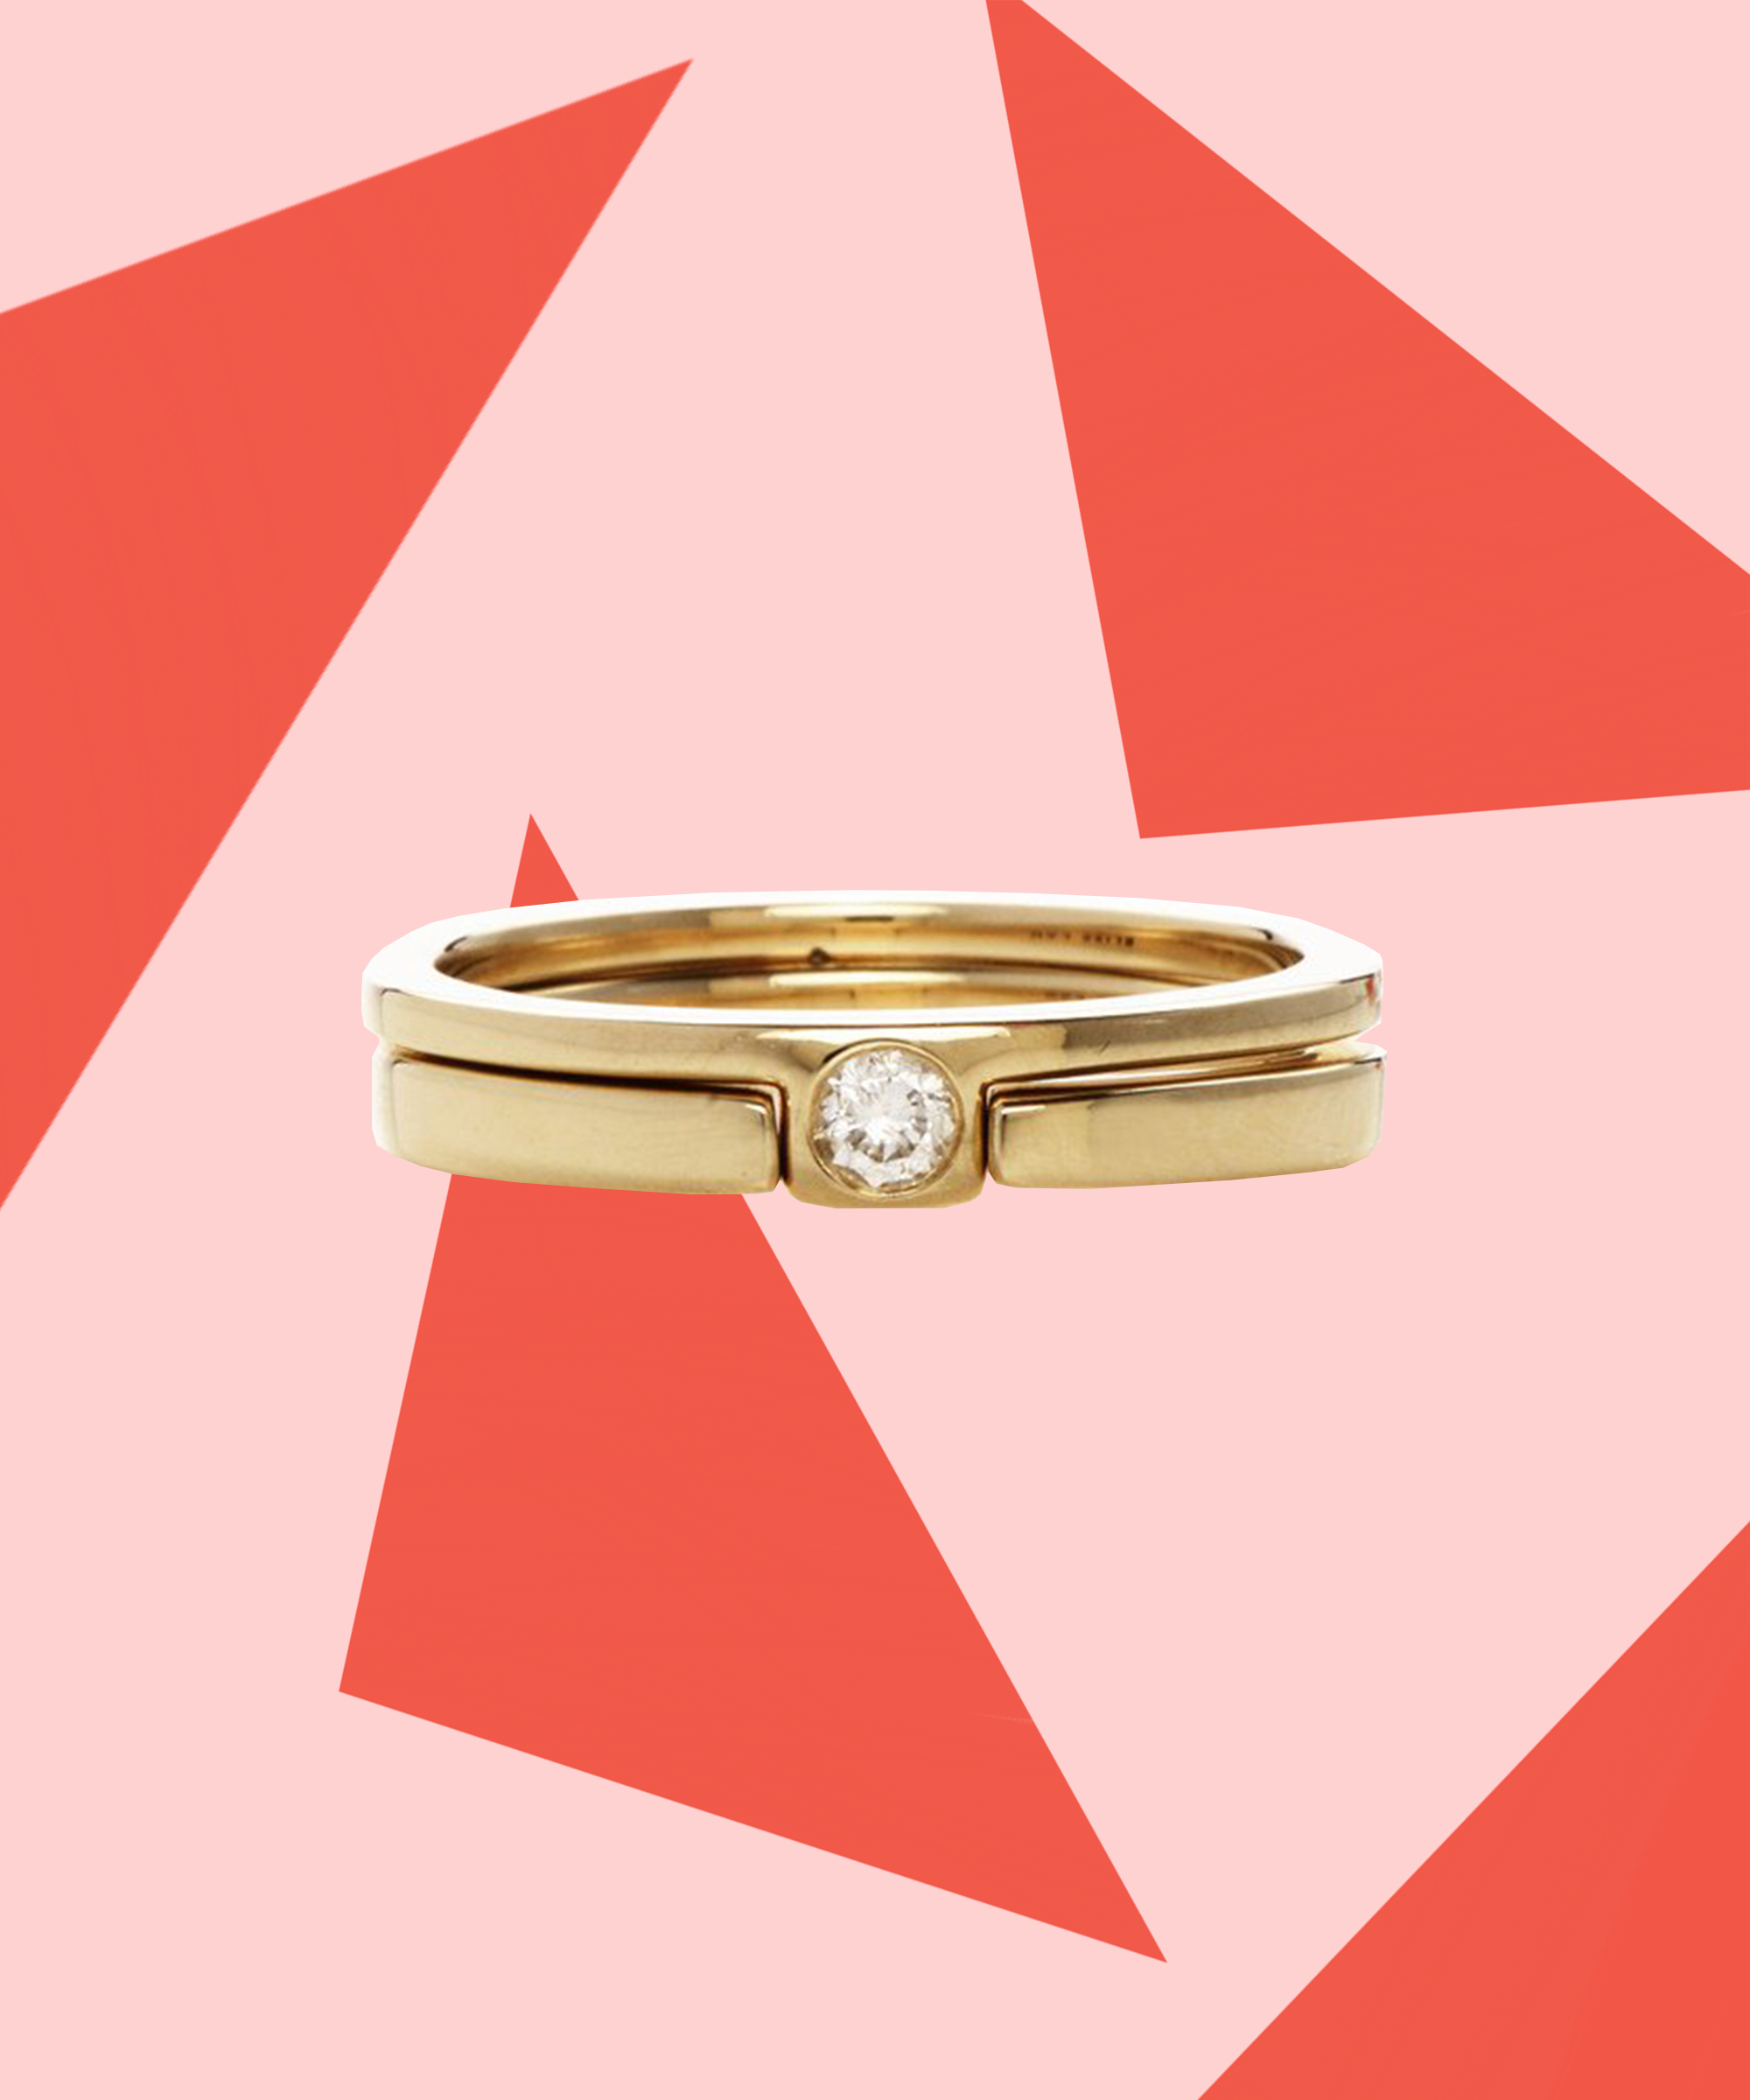 in tiny perfect it little sweetest makes moody gold rings is when simple solid opal minimal the total dream a ring this simplistic but design promise stunner catches for rose pin light